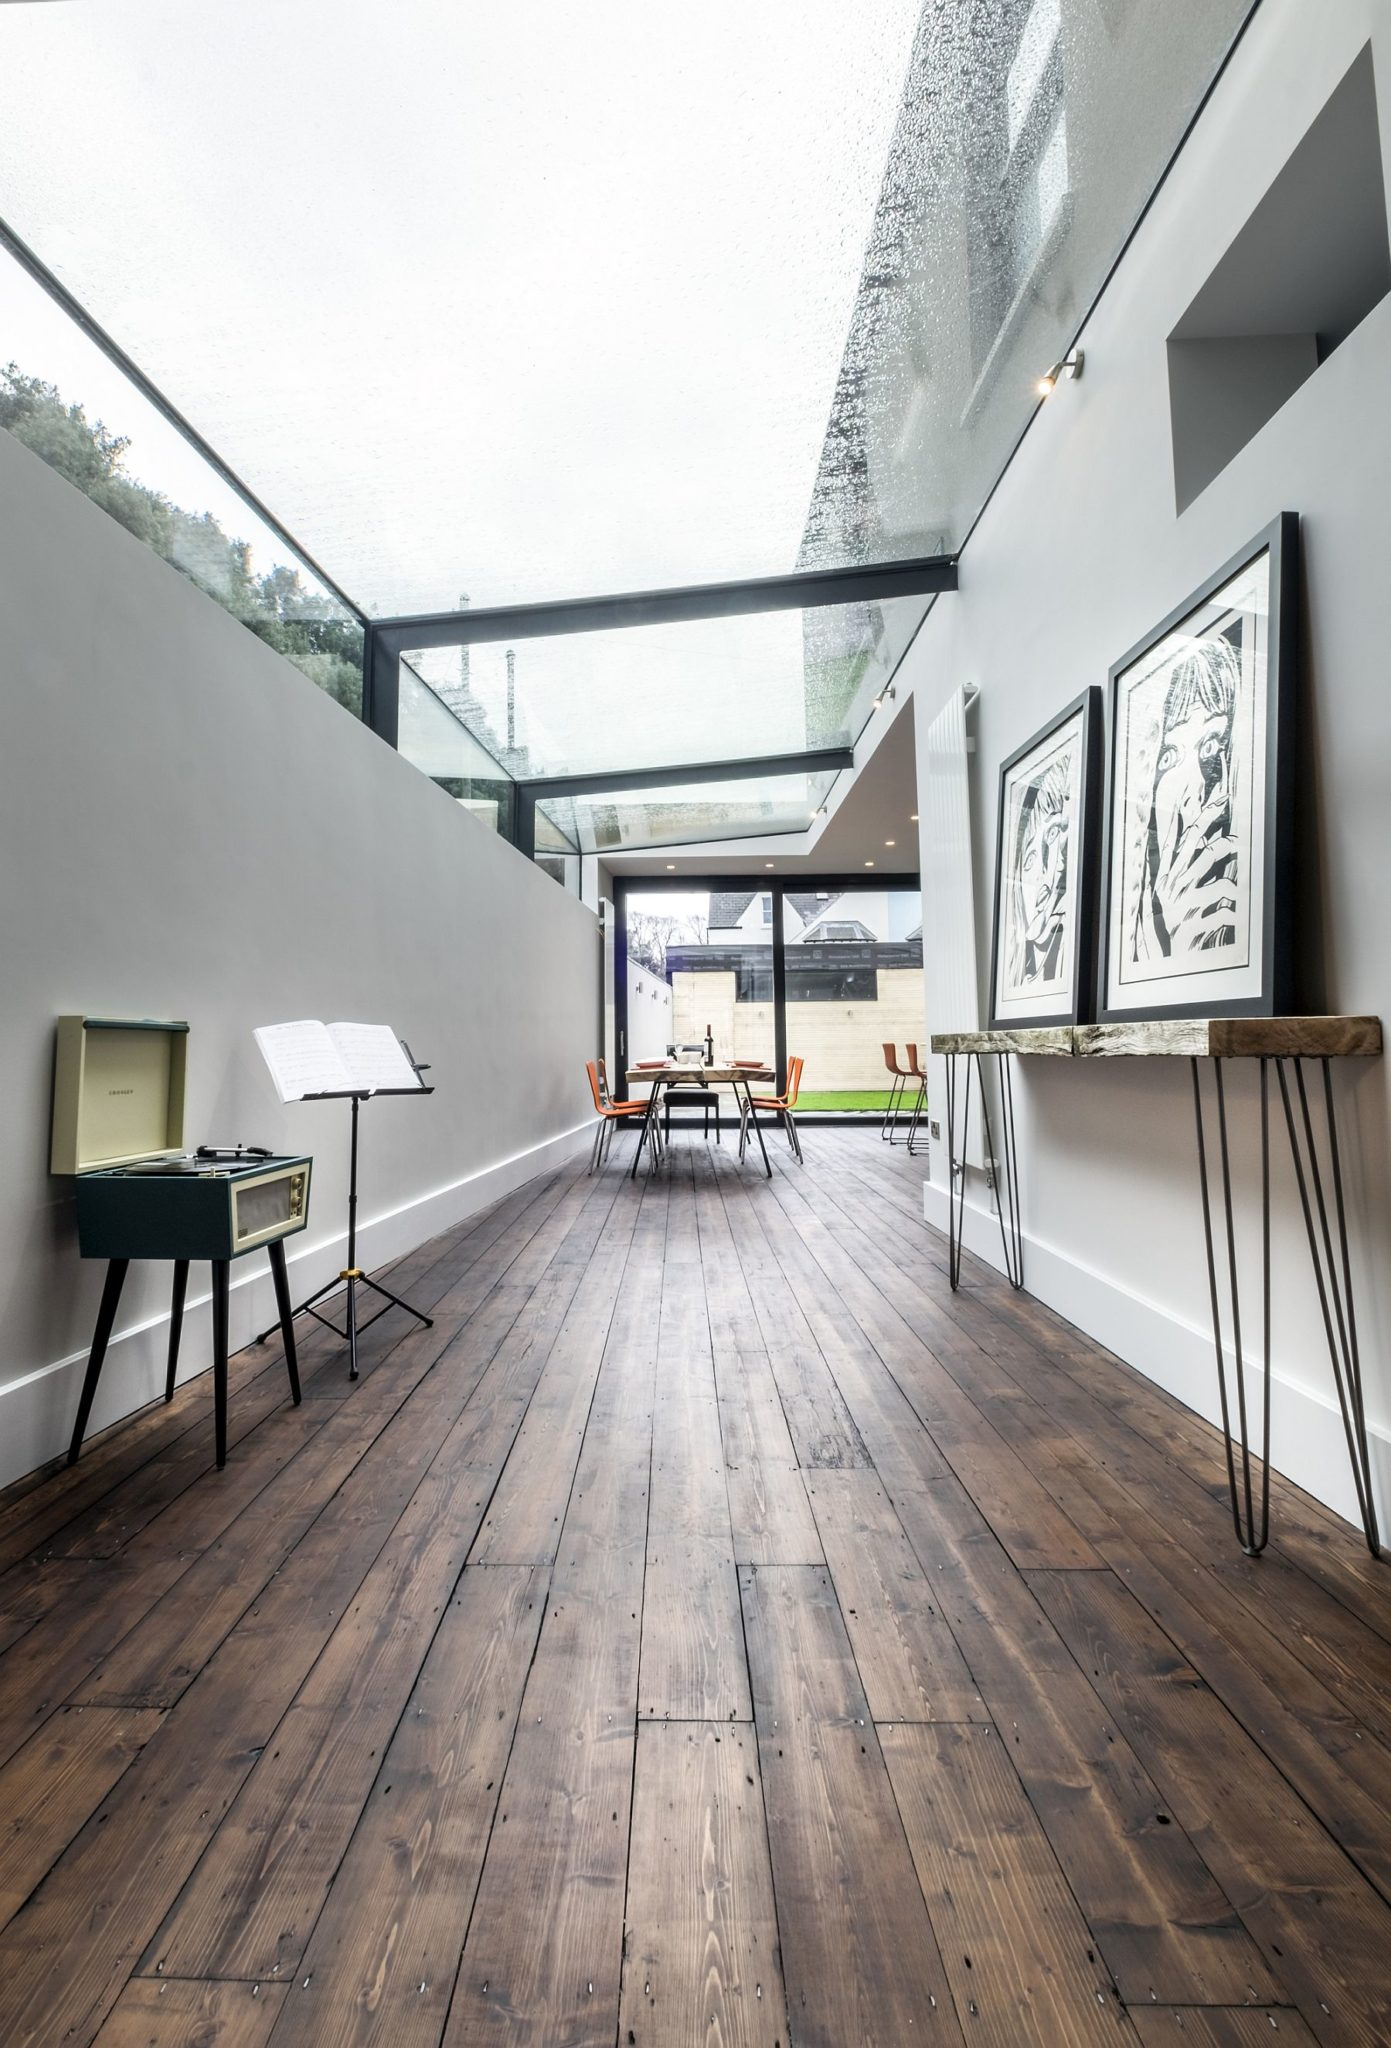 Modern Revamp Involving A Glass Roof Transforms This Dark